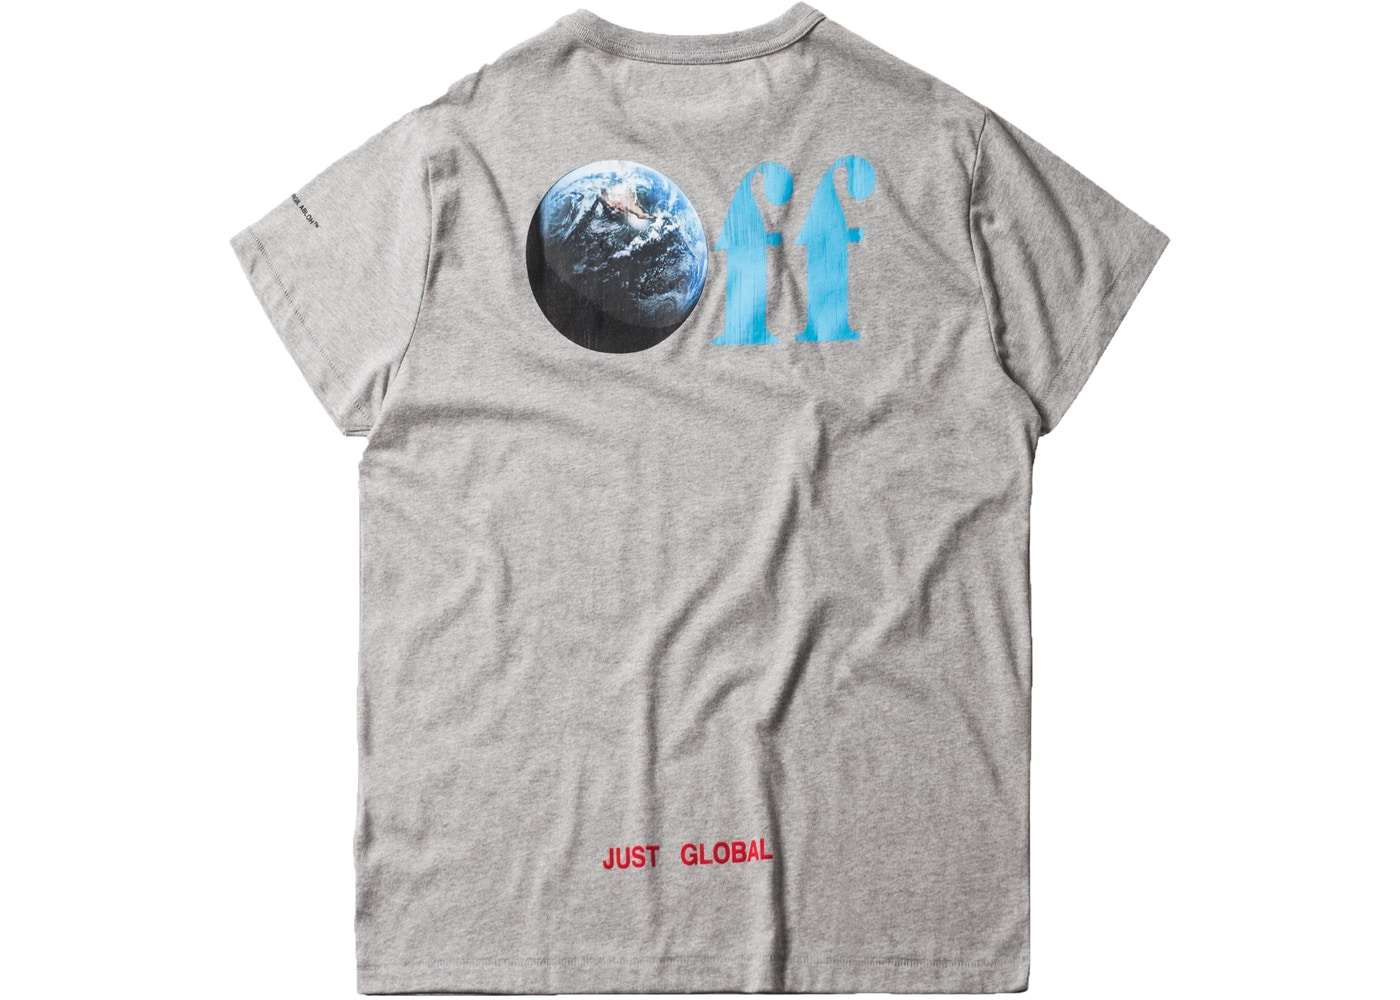 01b9777f68f0 Kith Off-White Just Global Tee Melange Grey - FW17